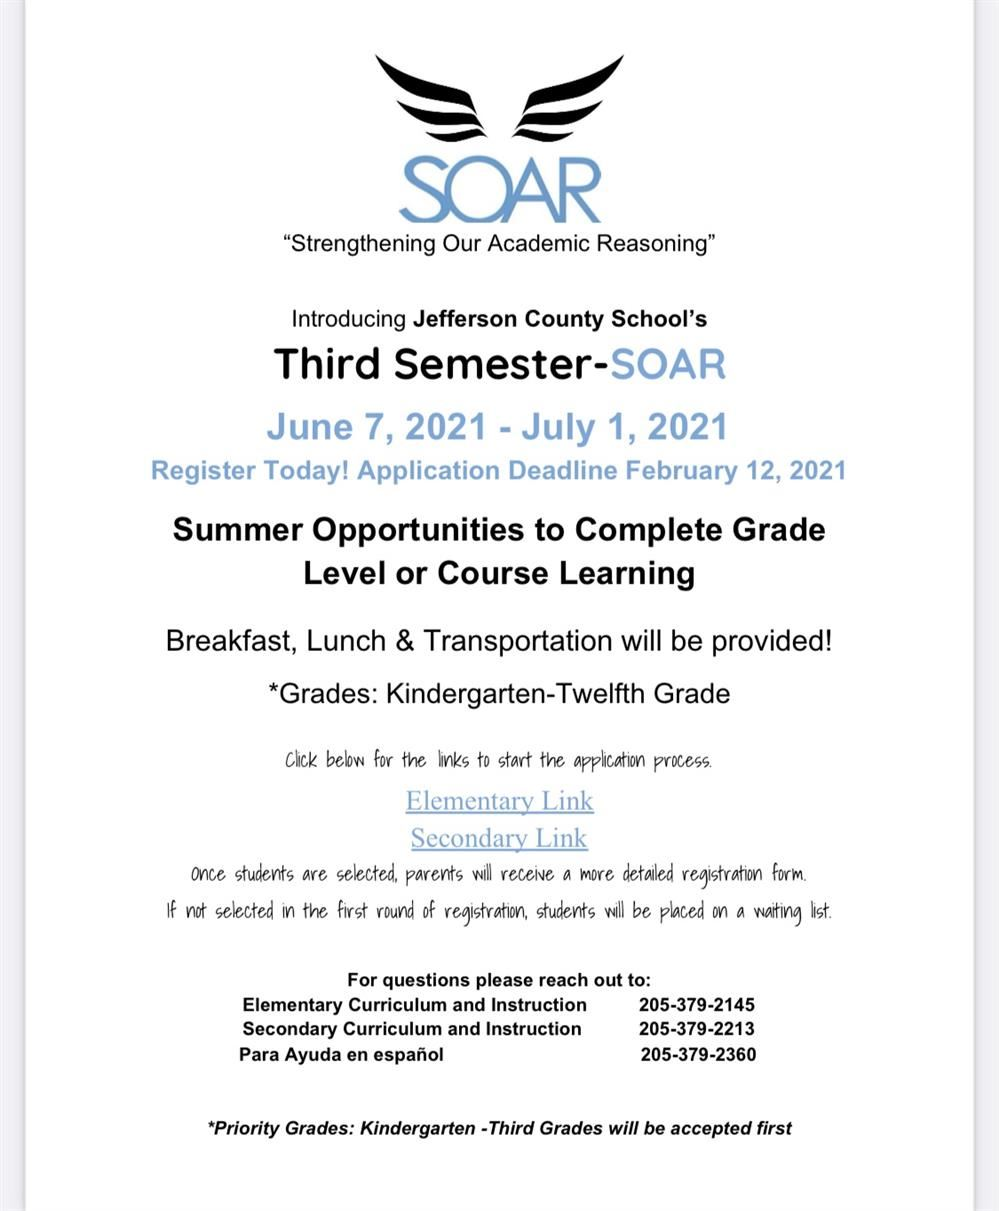 SOAR - Strengthening Our Academic Reasoning